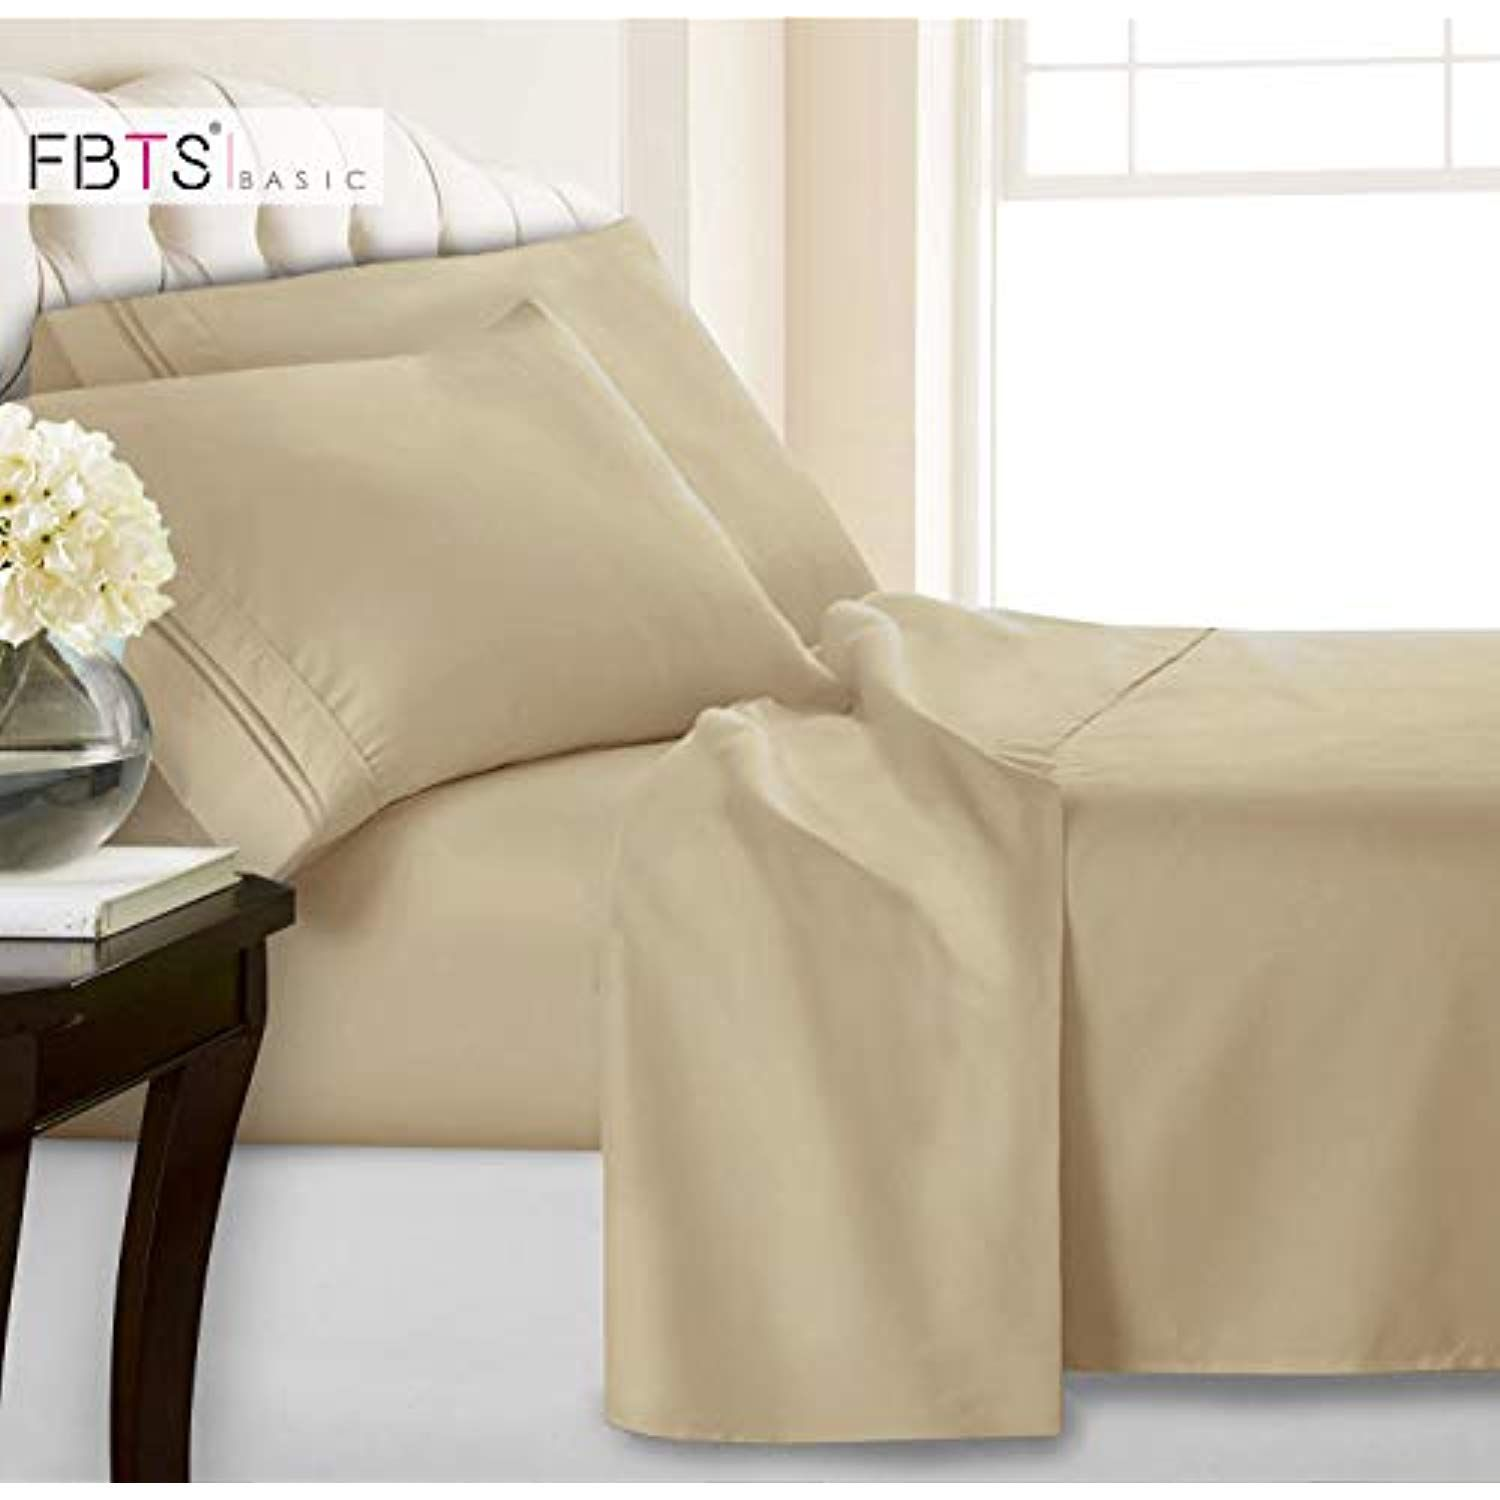 Queen Sheets Fitted Flat 4 Piece Bed Sheet Set 1800 Hotel Luxury Soft Hypoallergenic Microfiber Adjustable 15 18 Bed Sheets King Bed Sheets Bed Sheet Sets 18 inch deep pocket queen sheets